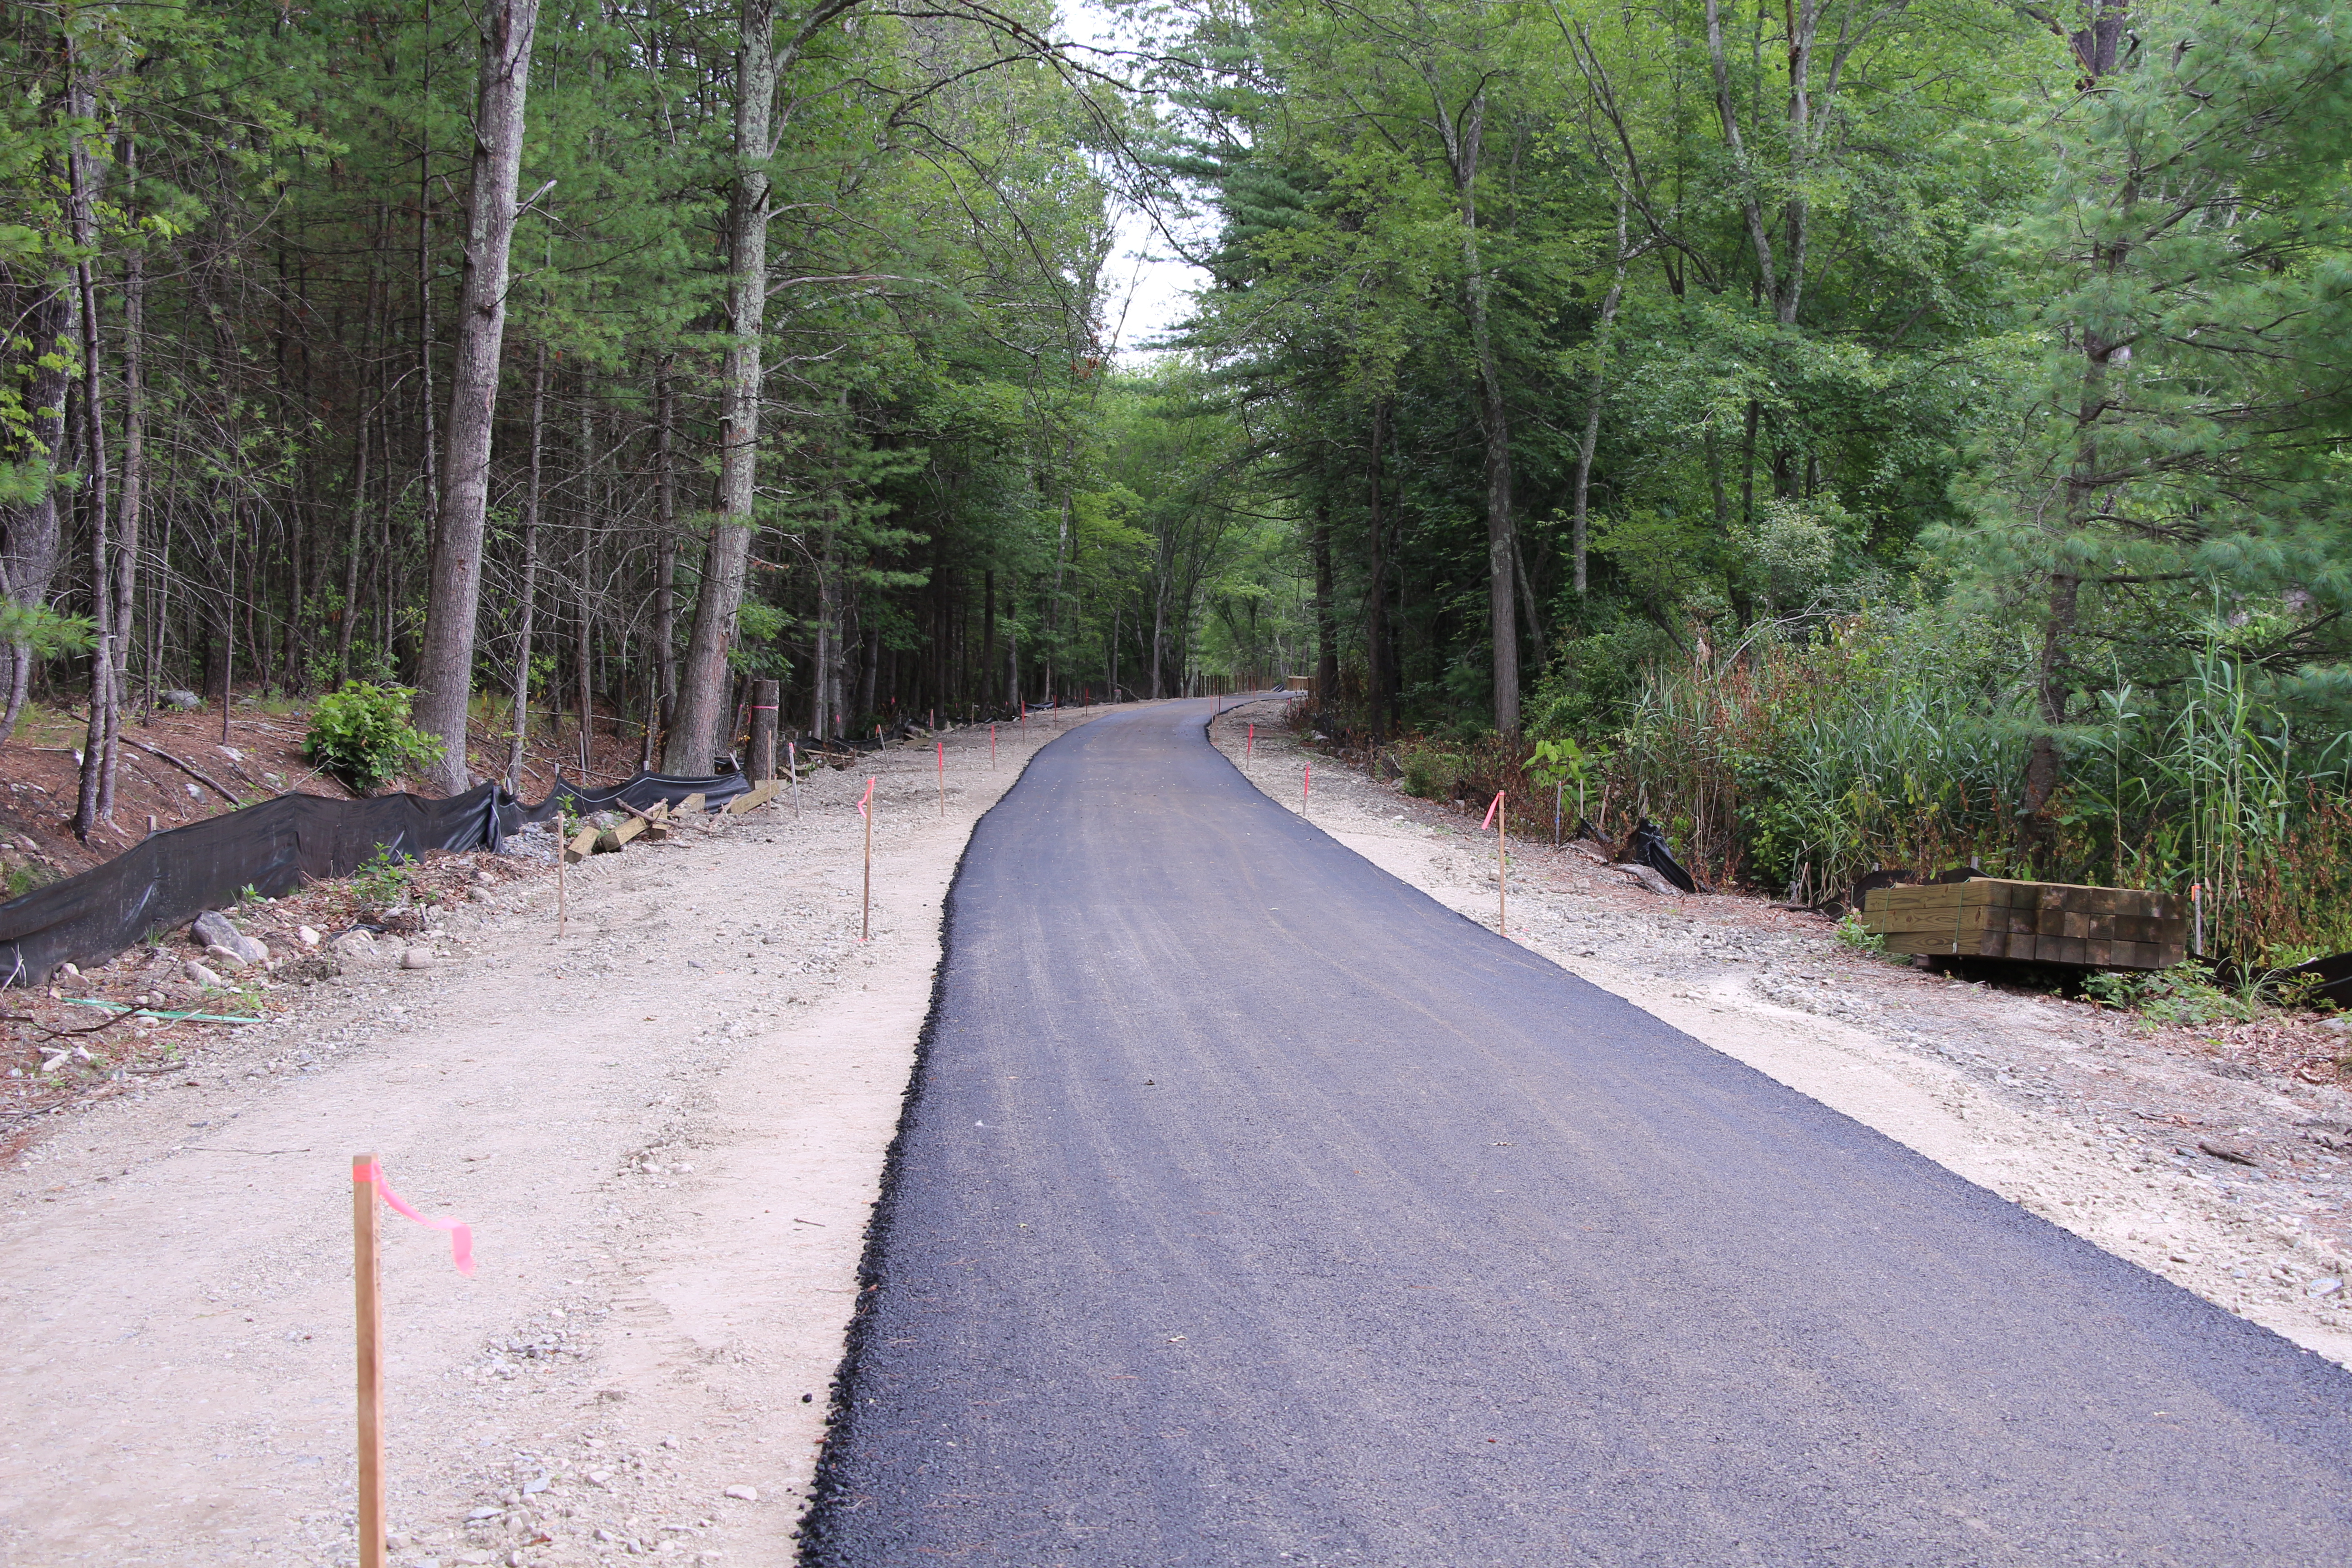 Progress on the trail in Acton.